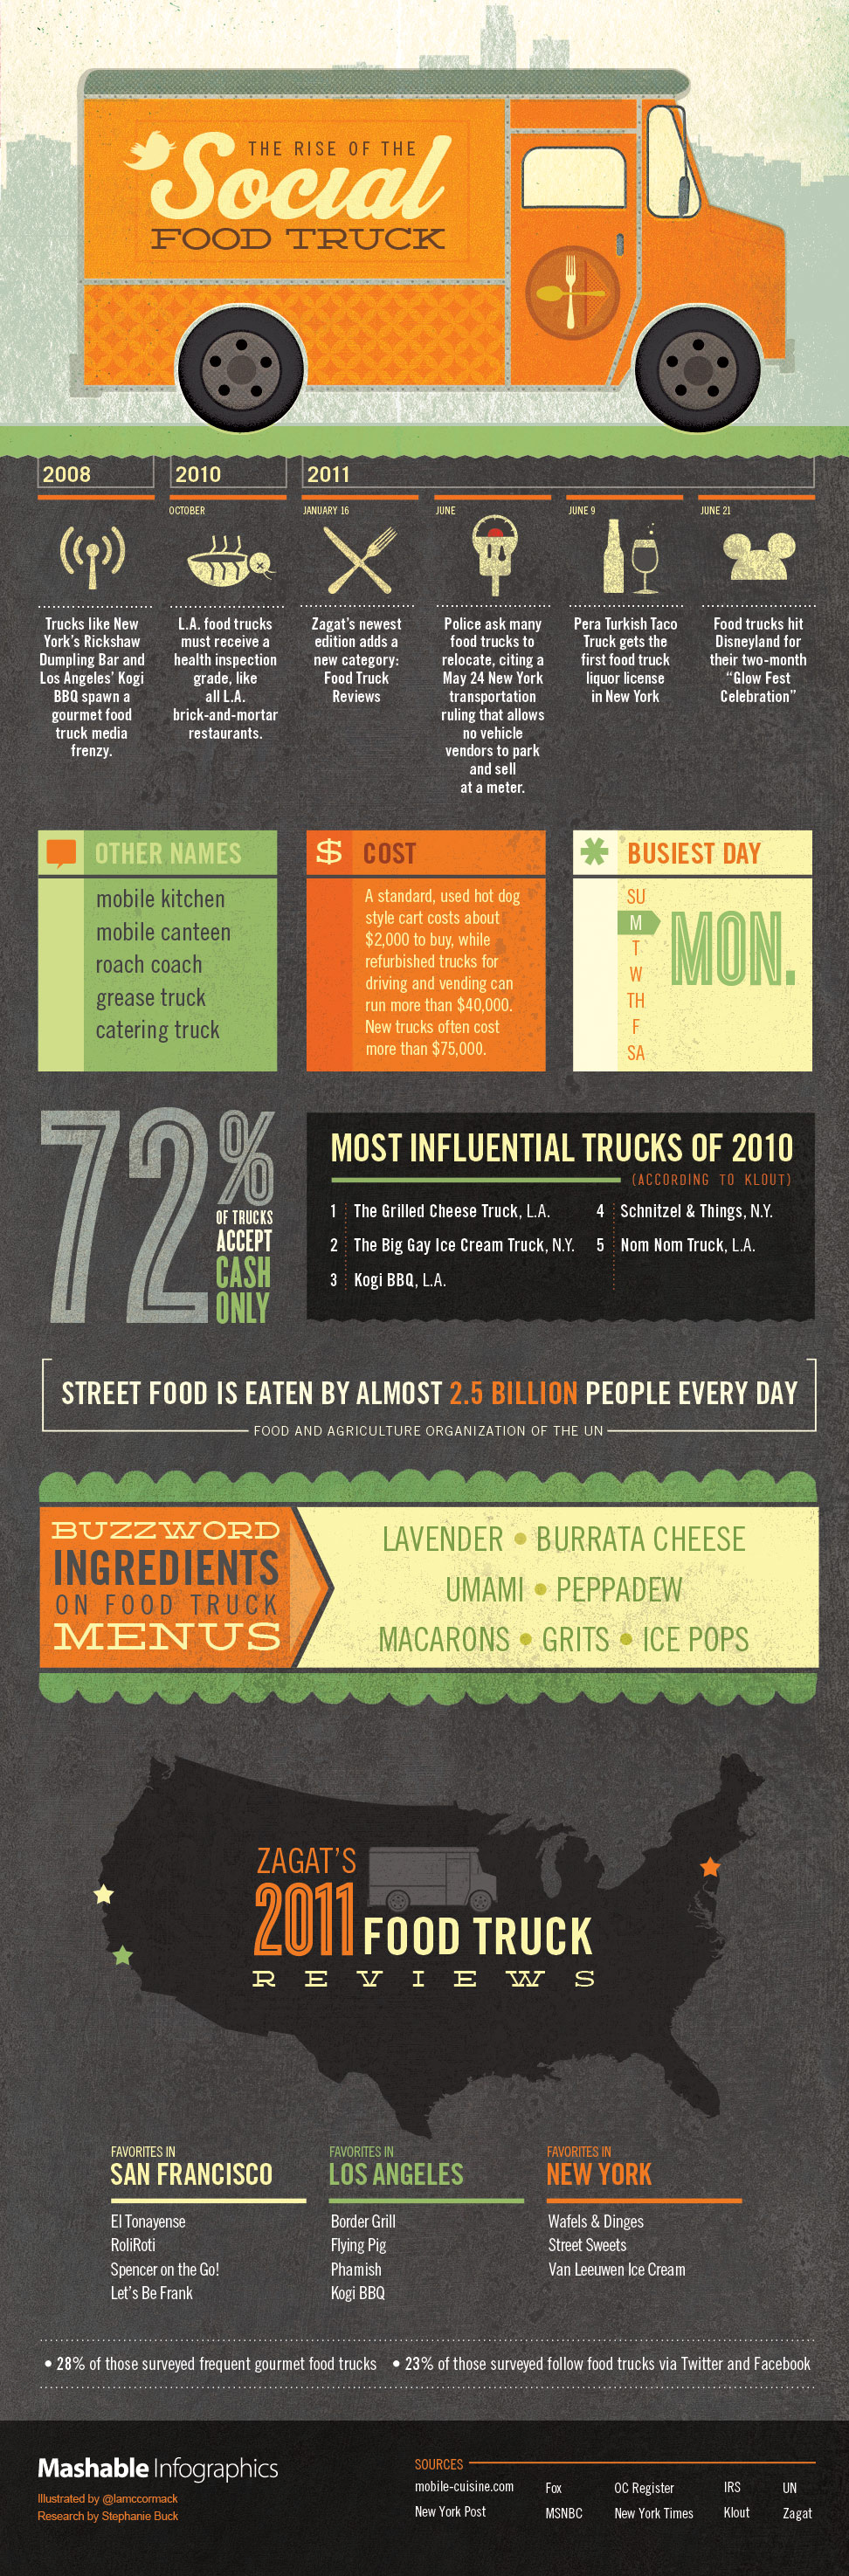 Mashable_infographic_food-trucks